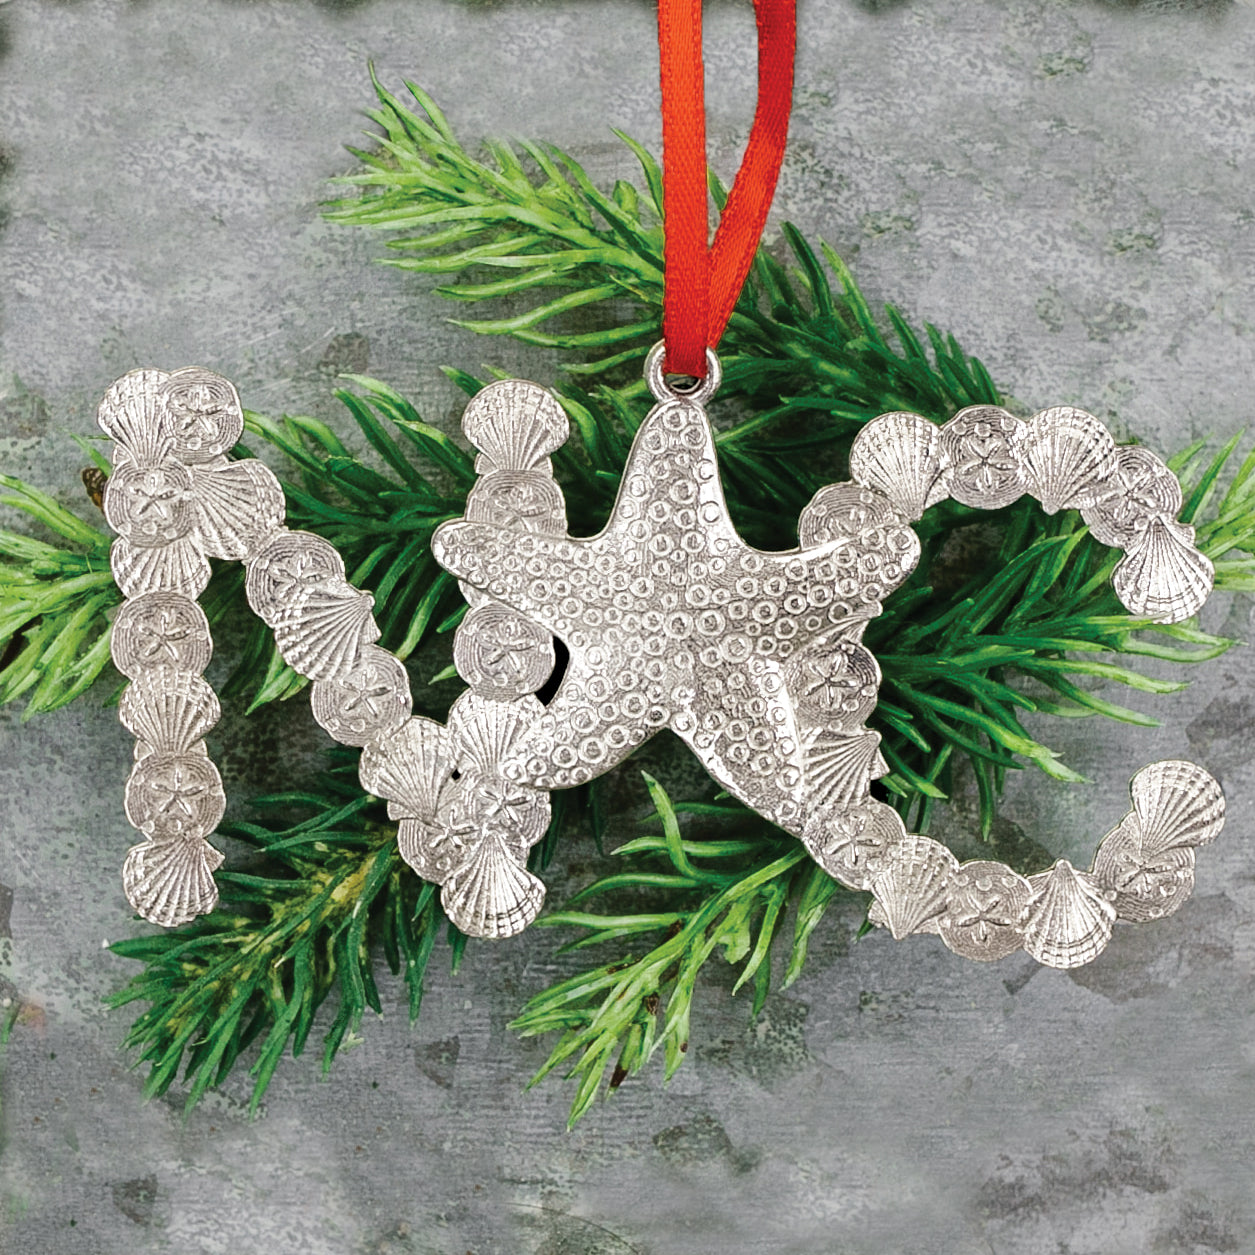 A pewter holiday Christmas tree ornament that says NC with starfish and seashells on a fir branch.